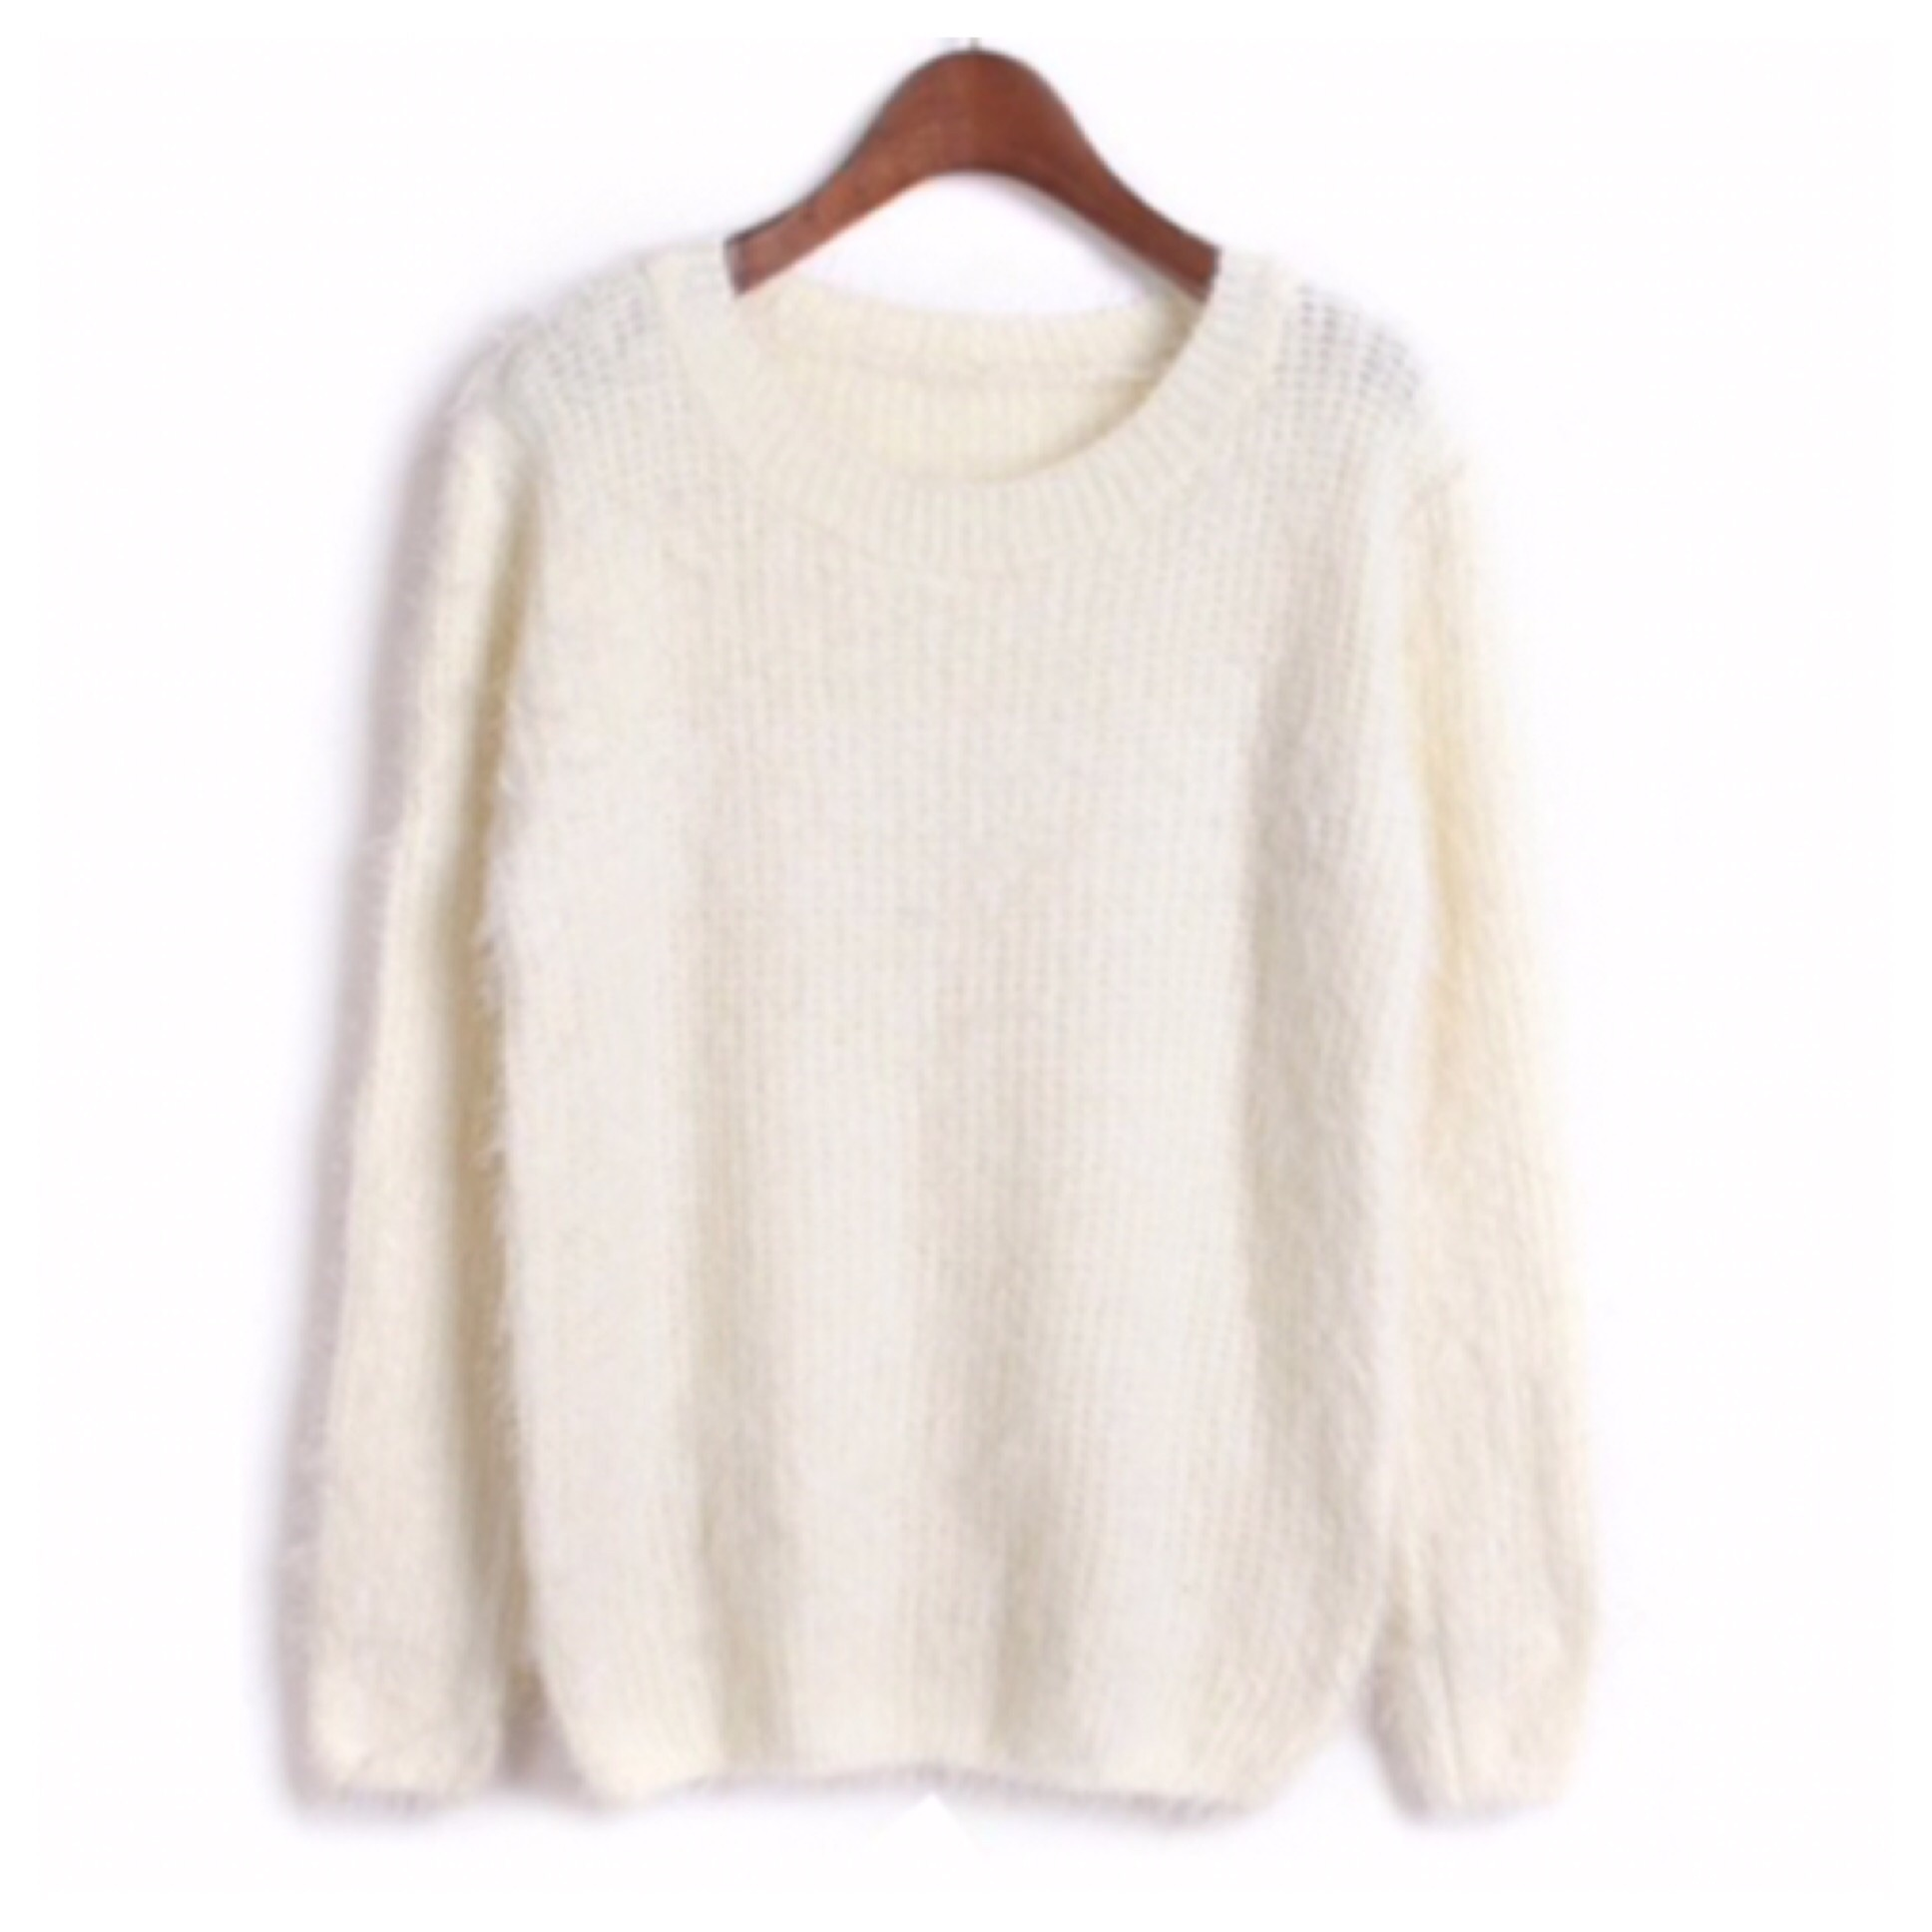 Fuzzy mohair knit sweater from doublelw on storenvy